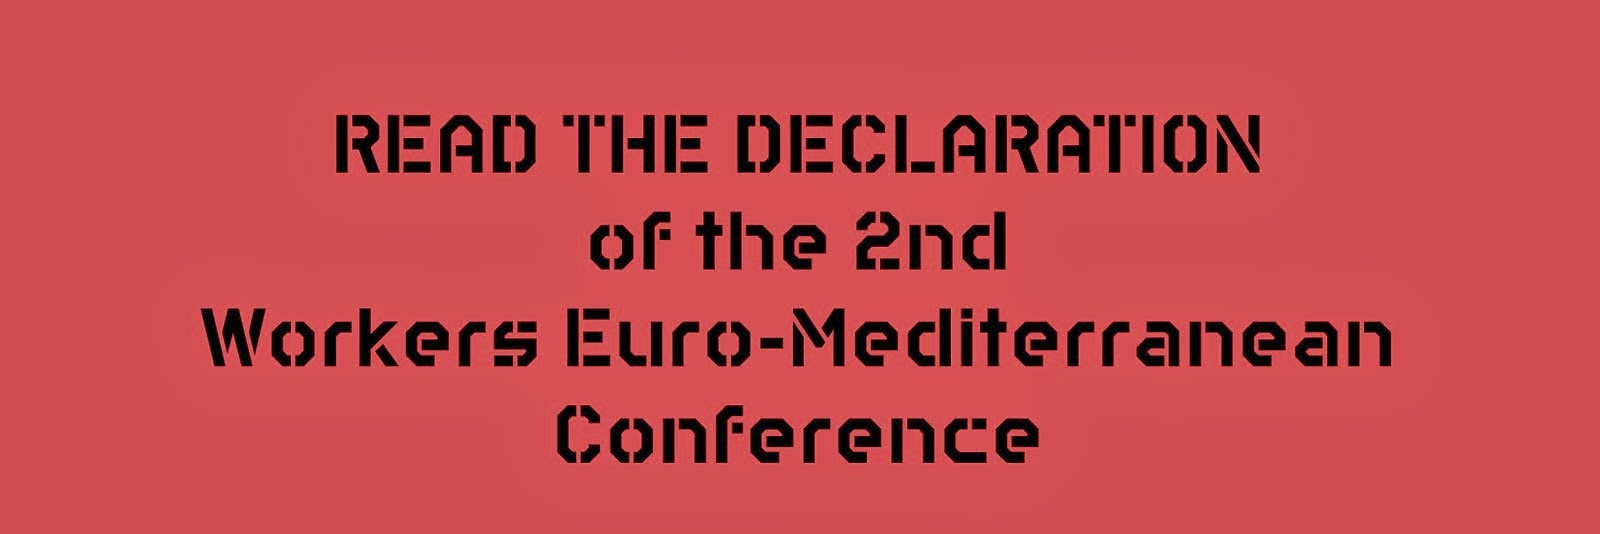 Declaration of the Conference